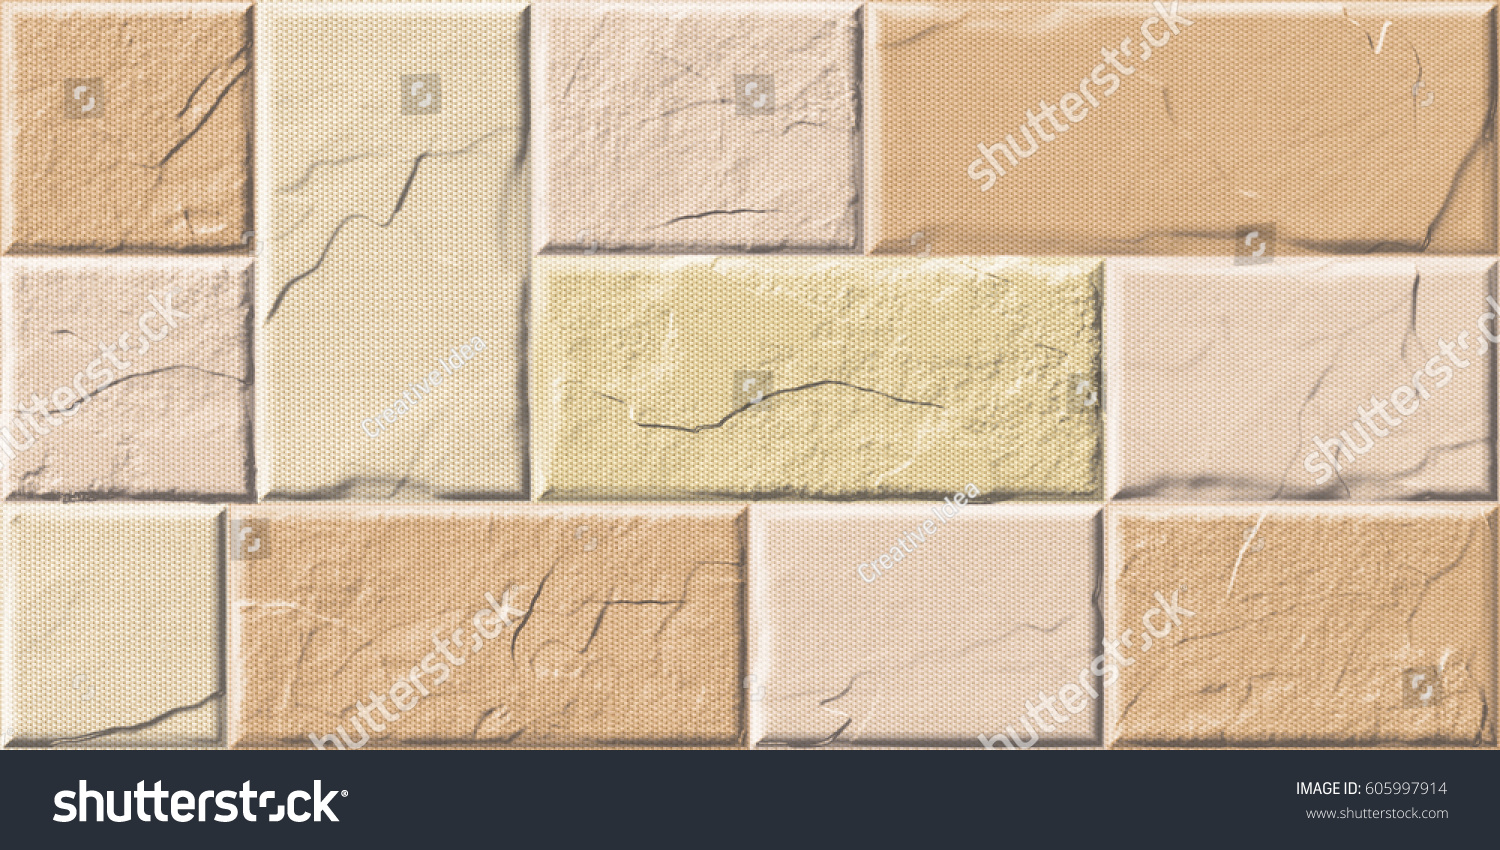 Abstract Home Wall Decorative Elevation Tiles Stock Illustration ...